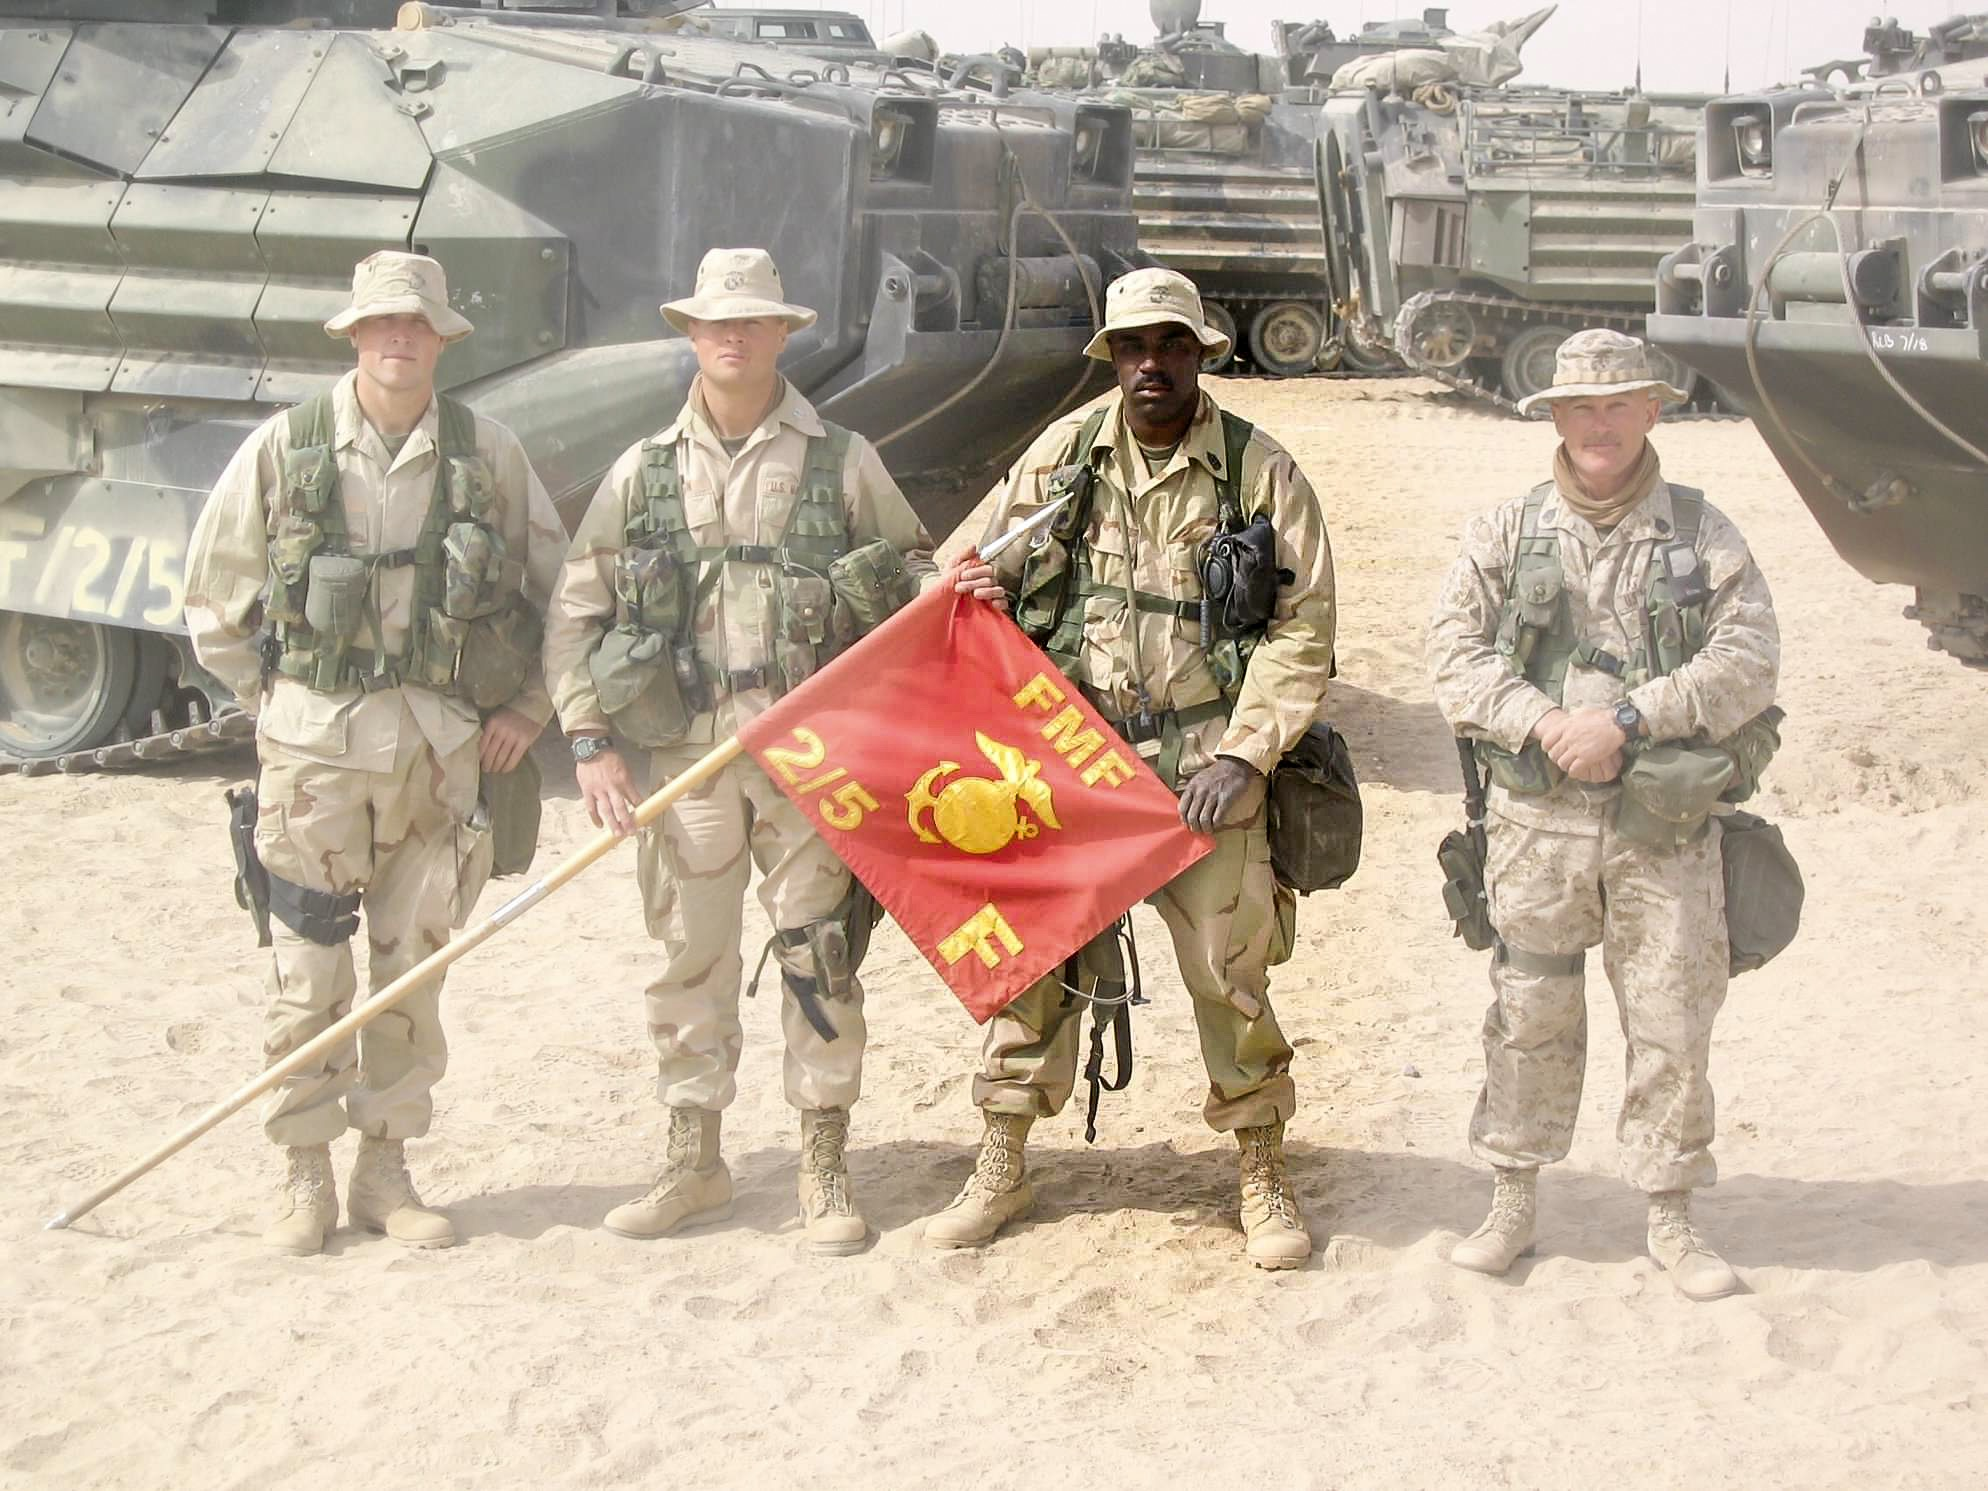 1st Sgt. Smith with his fellow Marines in Kuwait just before deploying to Iraq in 2003.